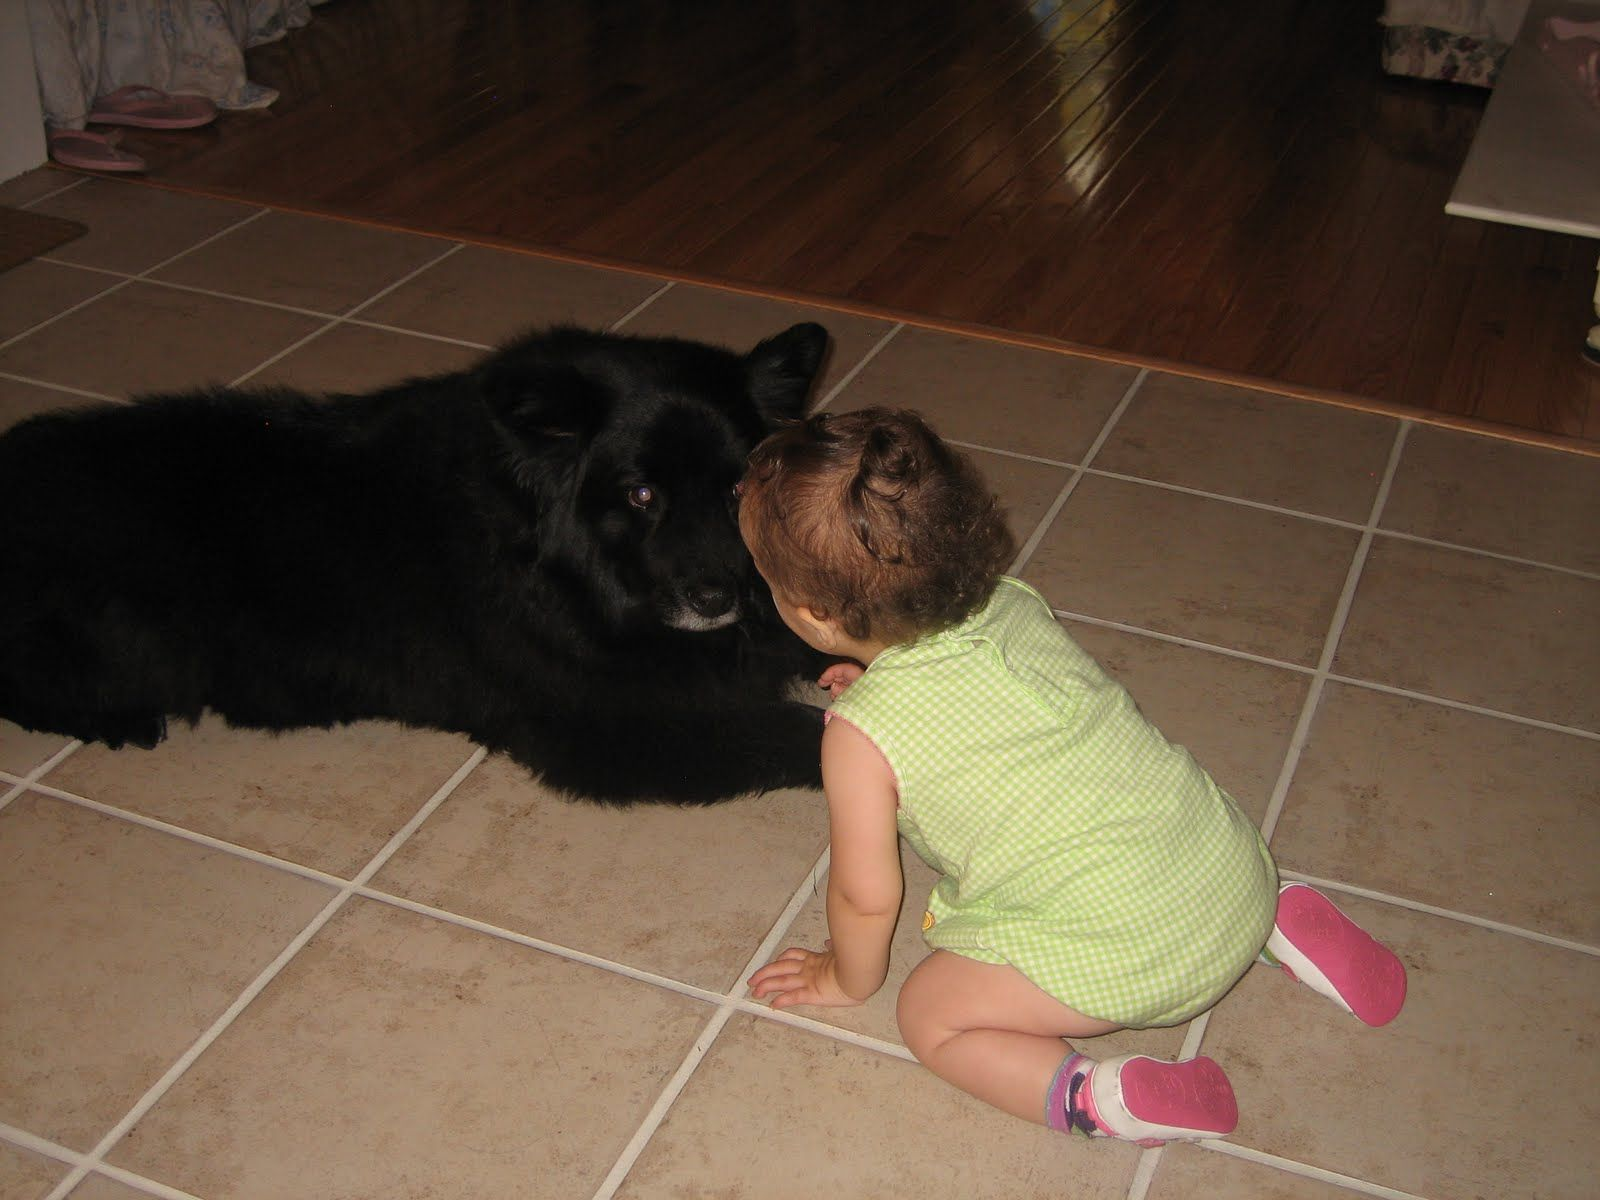 Threat Pupils Dilated Dog Appears To Be Making Hard Eye Contact This Baby Should Not Be Allowed To Remain In This Dog S Face Dog Face Dogs Canine